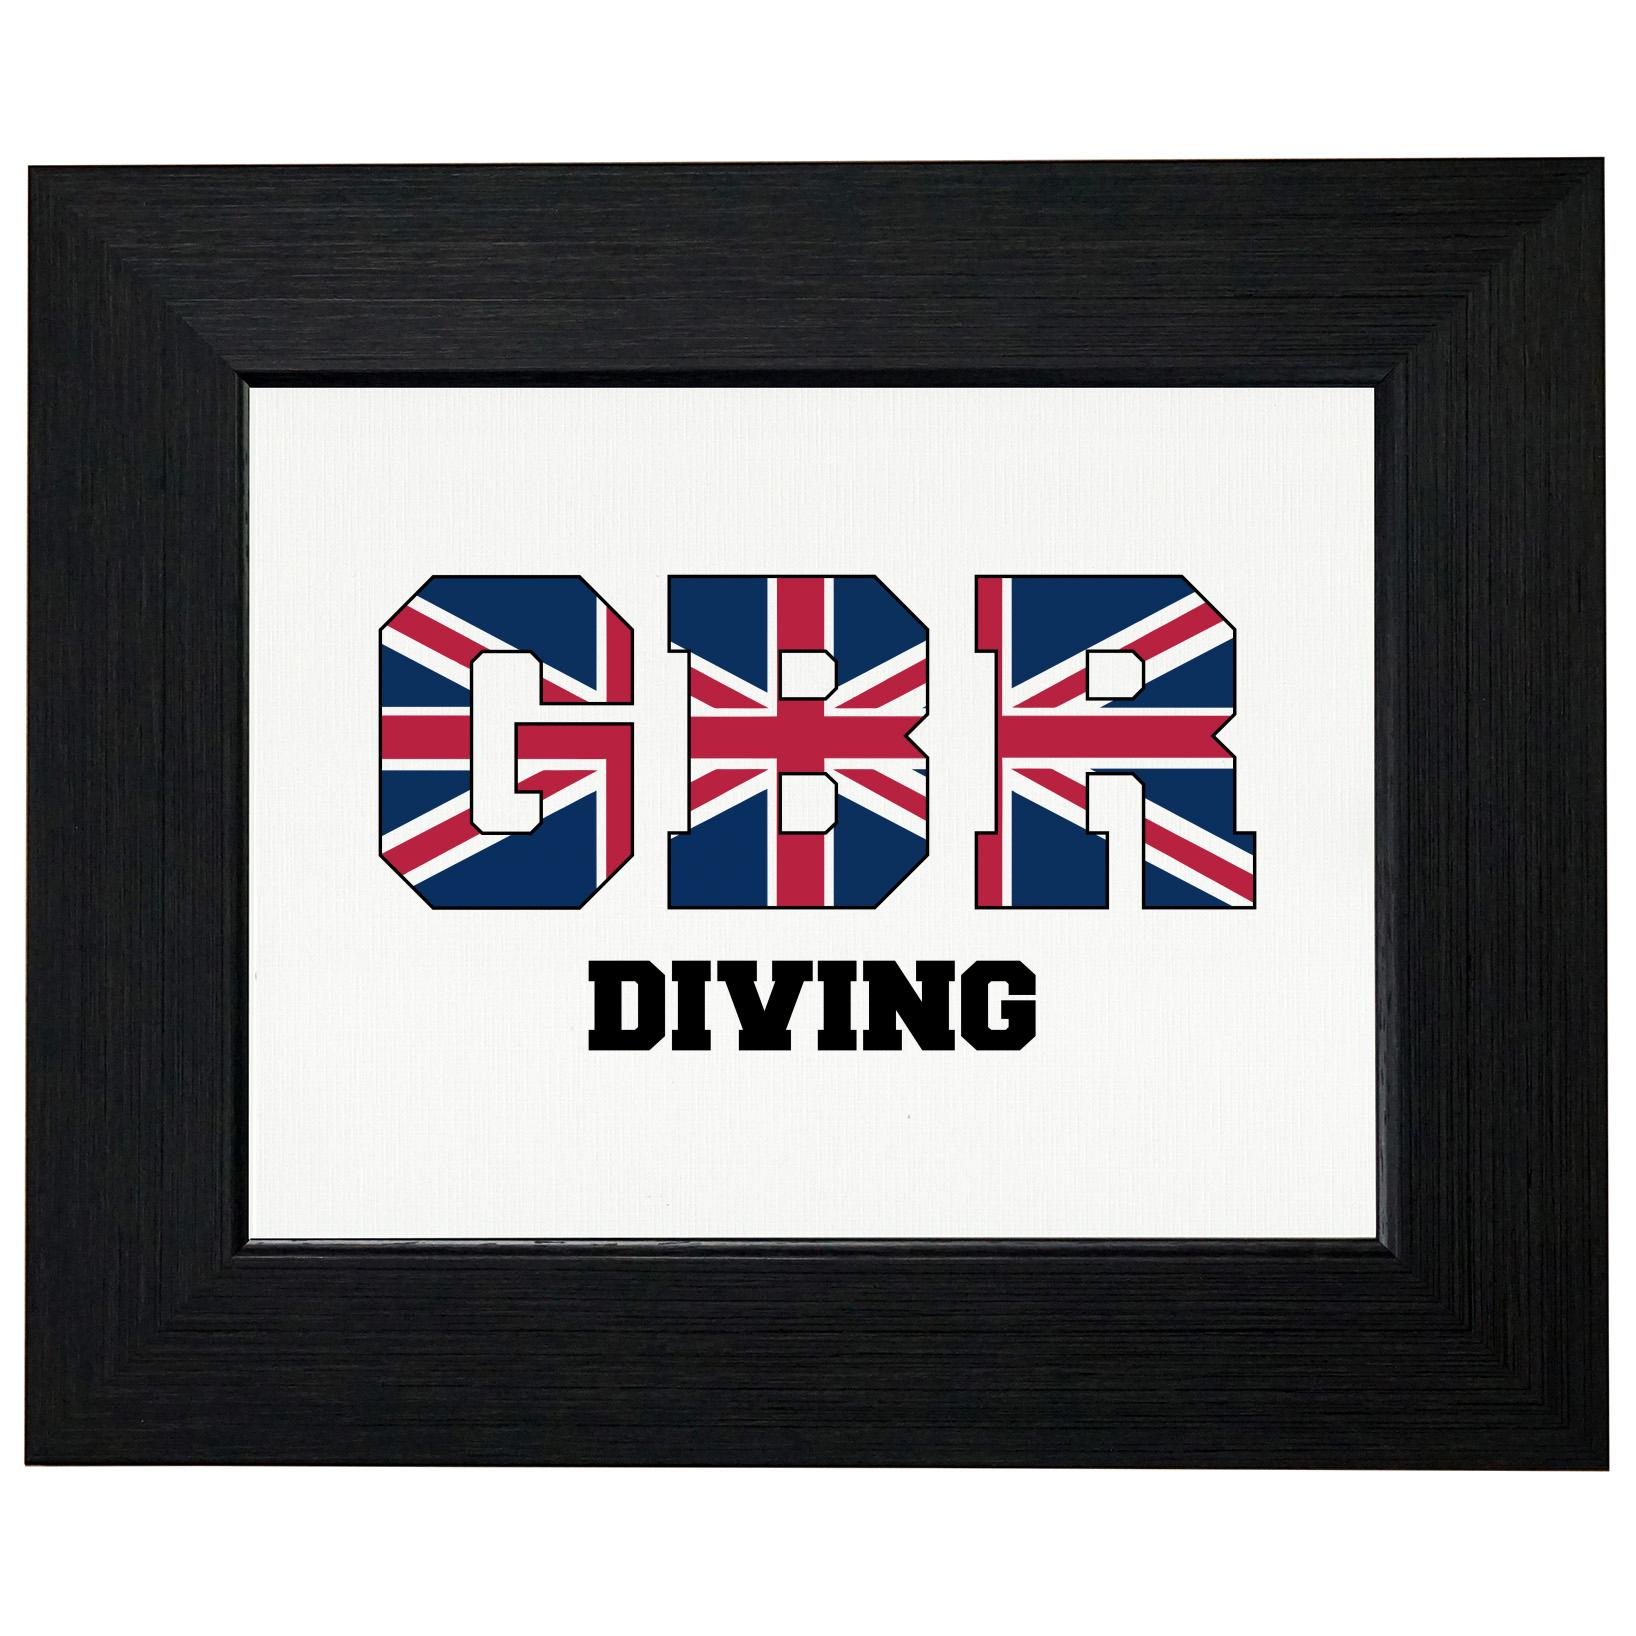 Great Britain Diving - Olympic Games - Rio - Flag Framed Print Poster Wall or Desk Mount Options